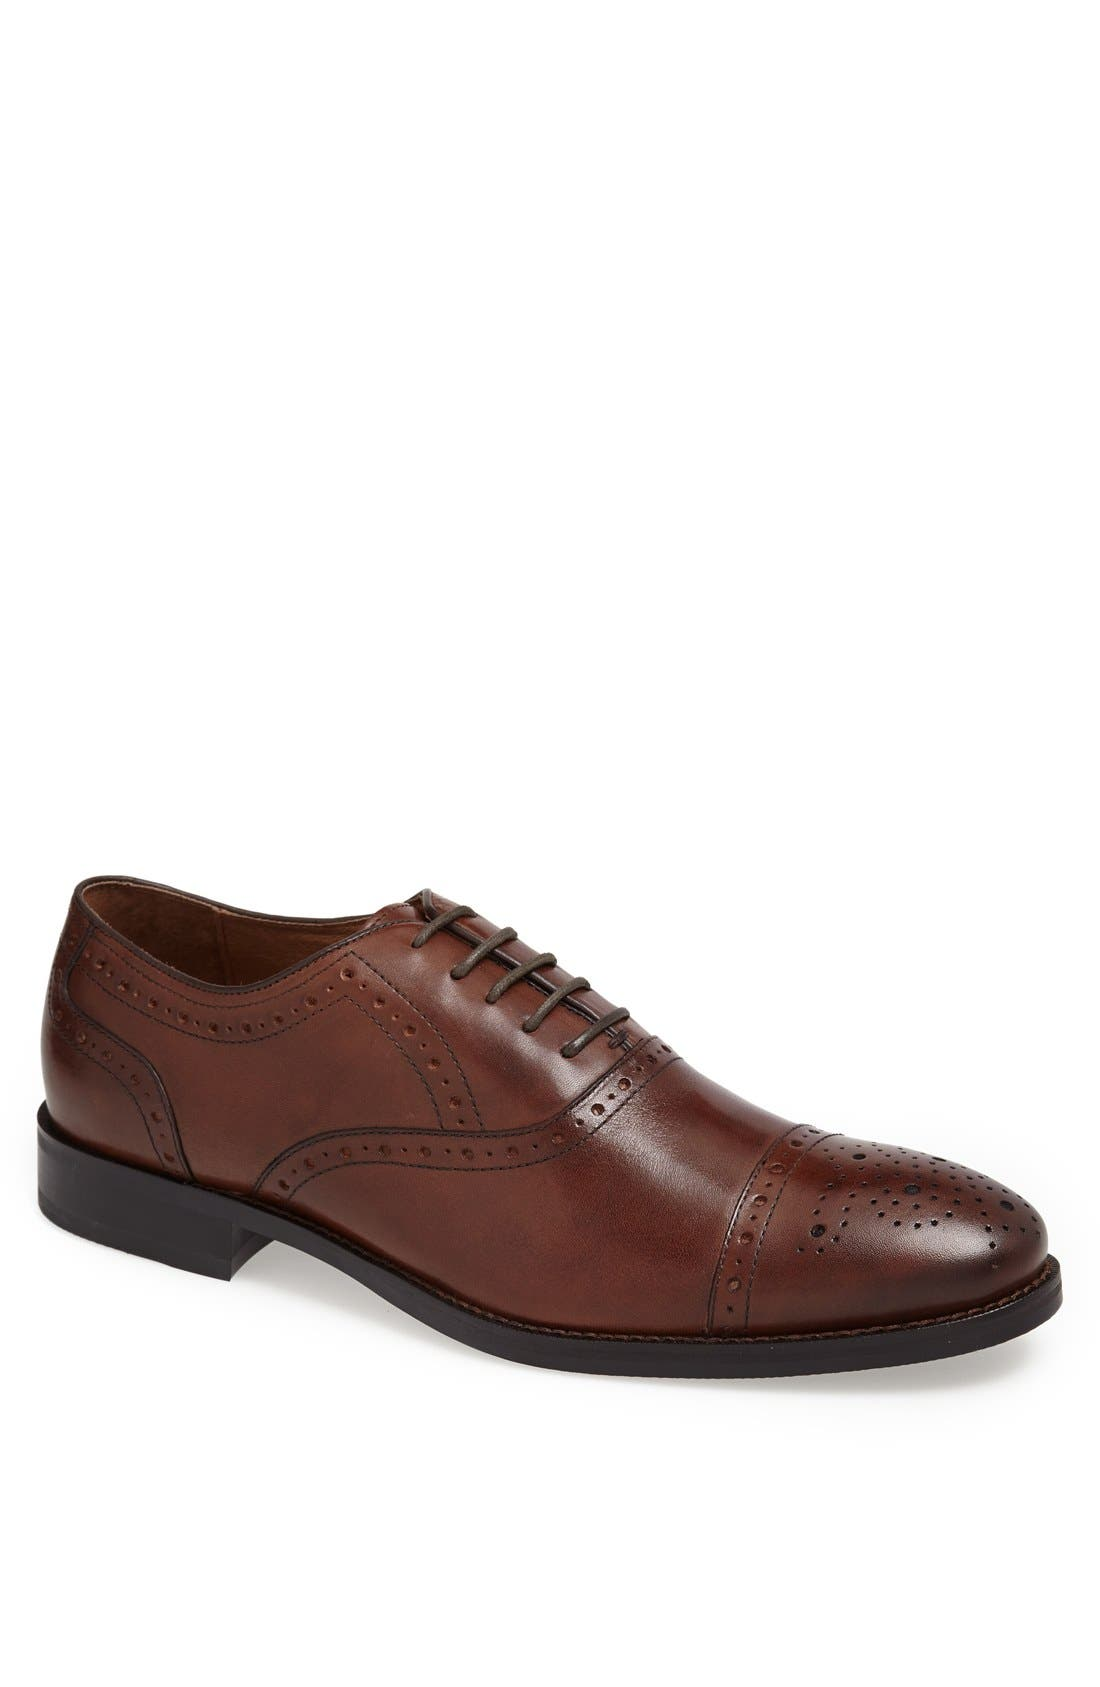 Alternate Image 1 Selected - Johnston & Murphy 'Tyndall' Cap Toe Oxford (Online Only)